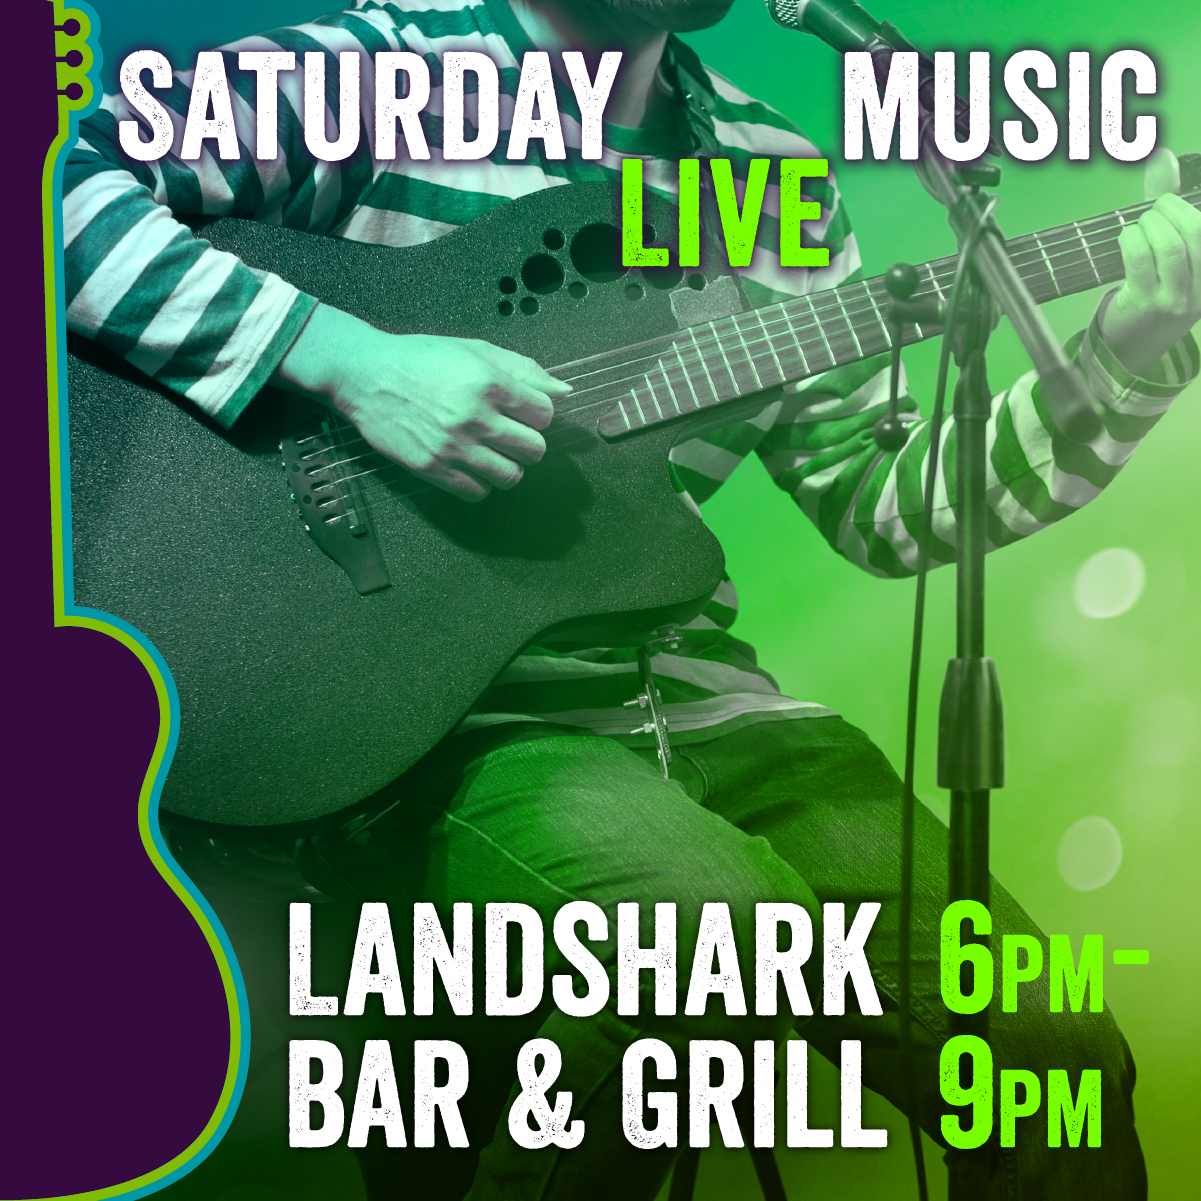 Live music and things to do in Vicksburg